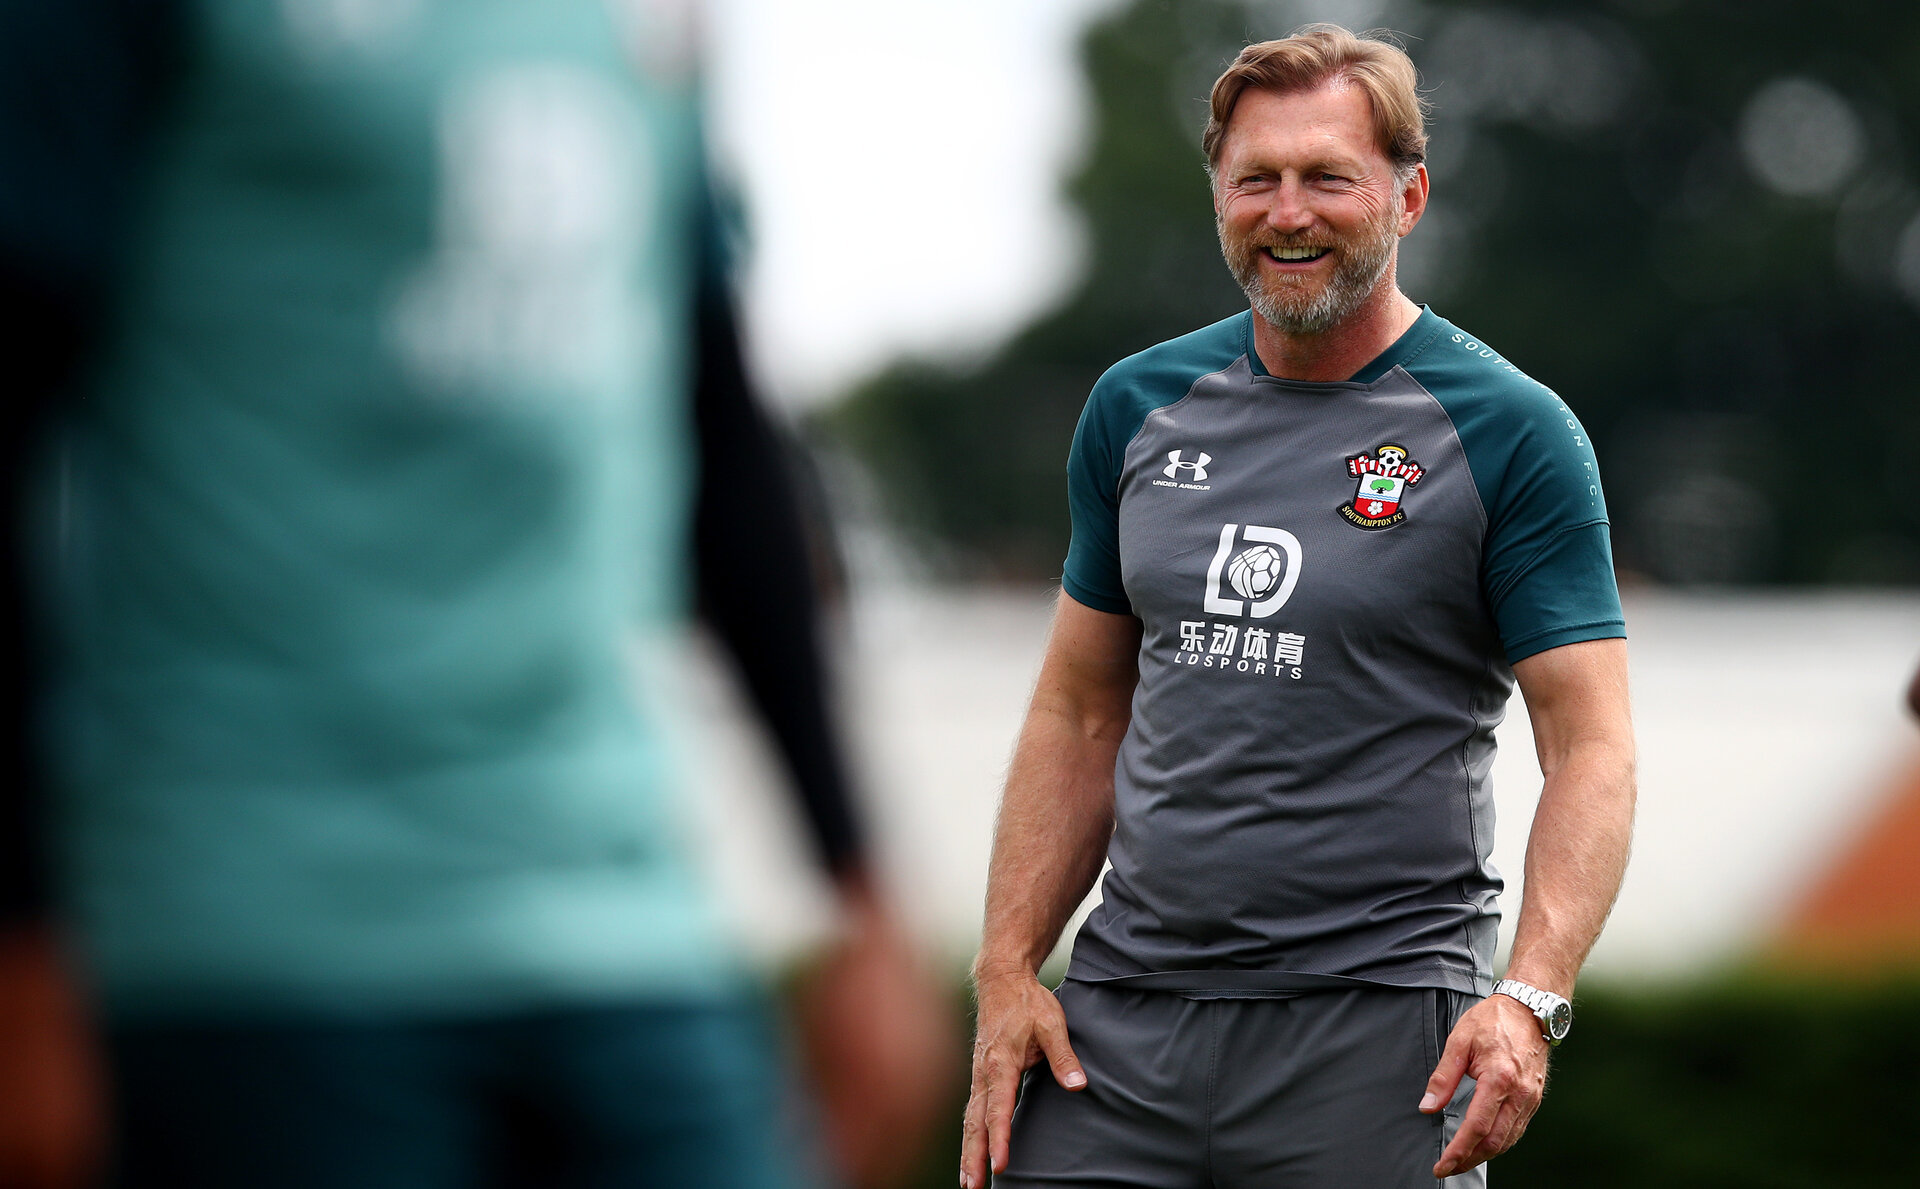 SOUTHAMPTON, ENGLAND - JUNE 17: Ralph Hasenhuttl during a Southampton FC training session at the Staplewood Campus on June 17, 2020 in Southampton, England. (Photo by Matt Watson/Southampton FC via Getty Images)